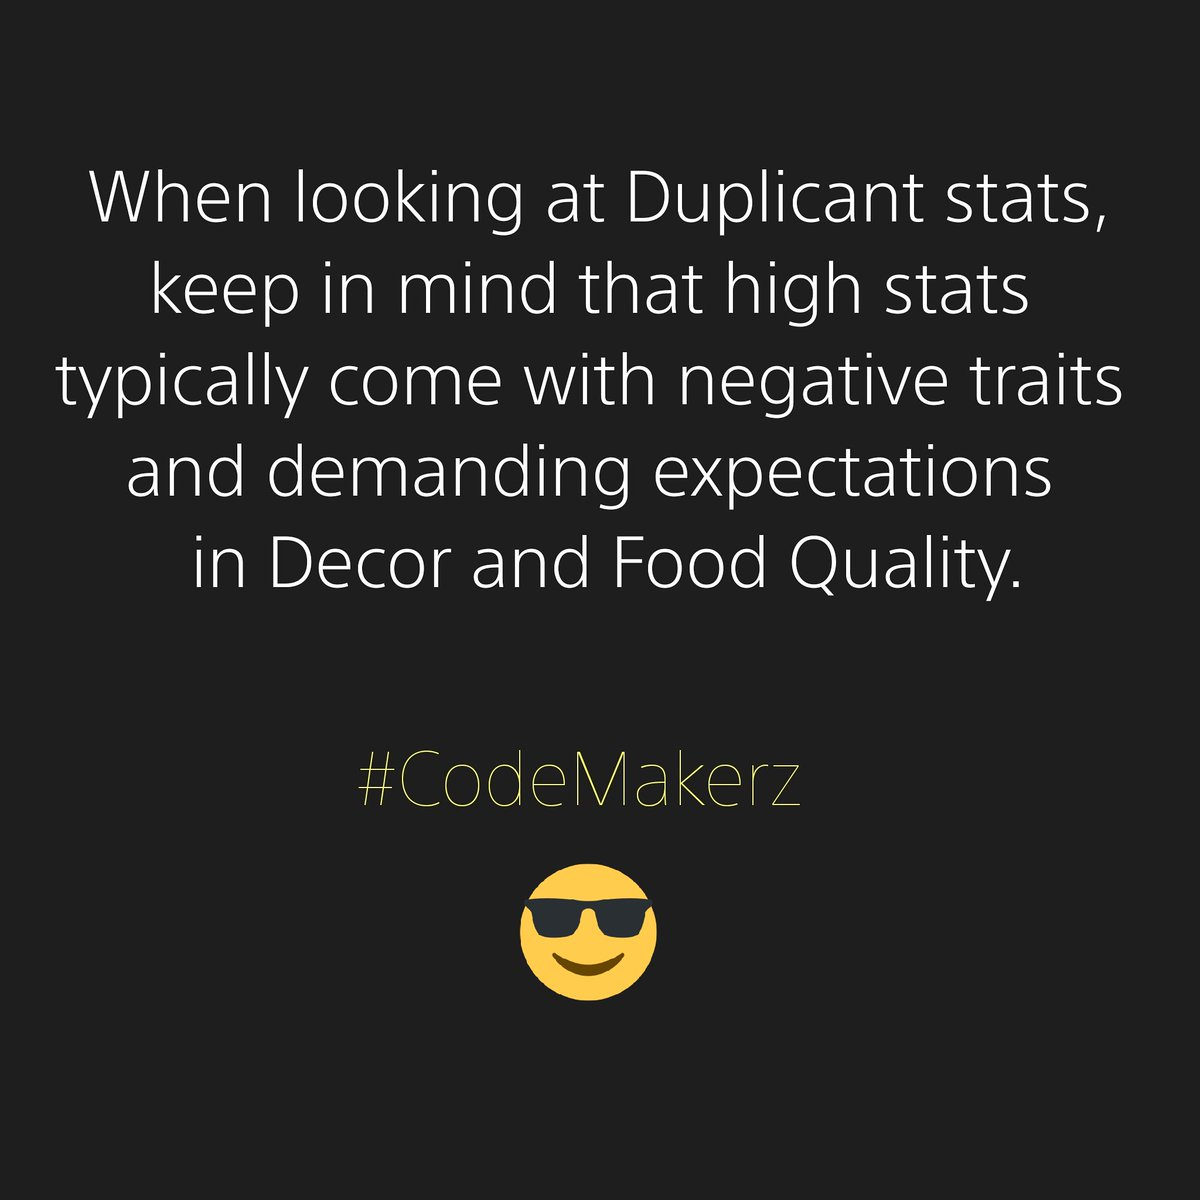 CodeMakerz on Twitter: